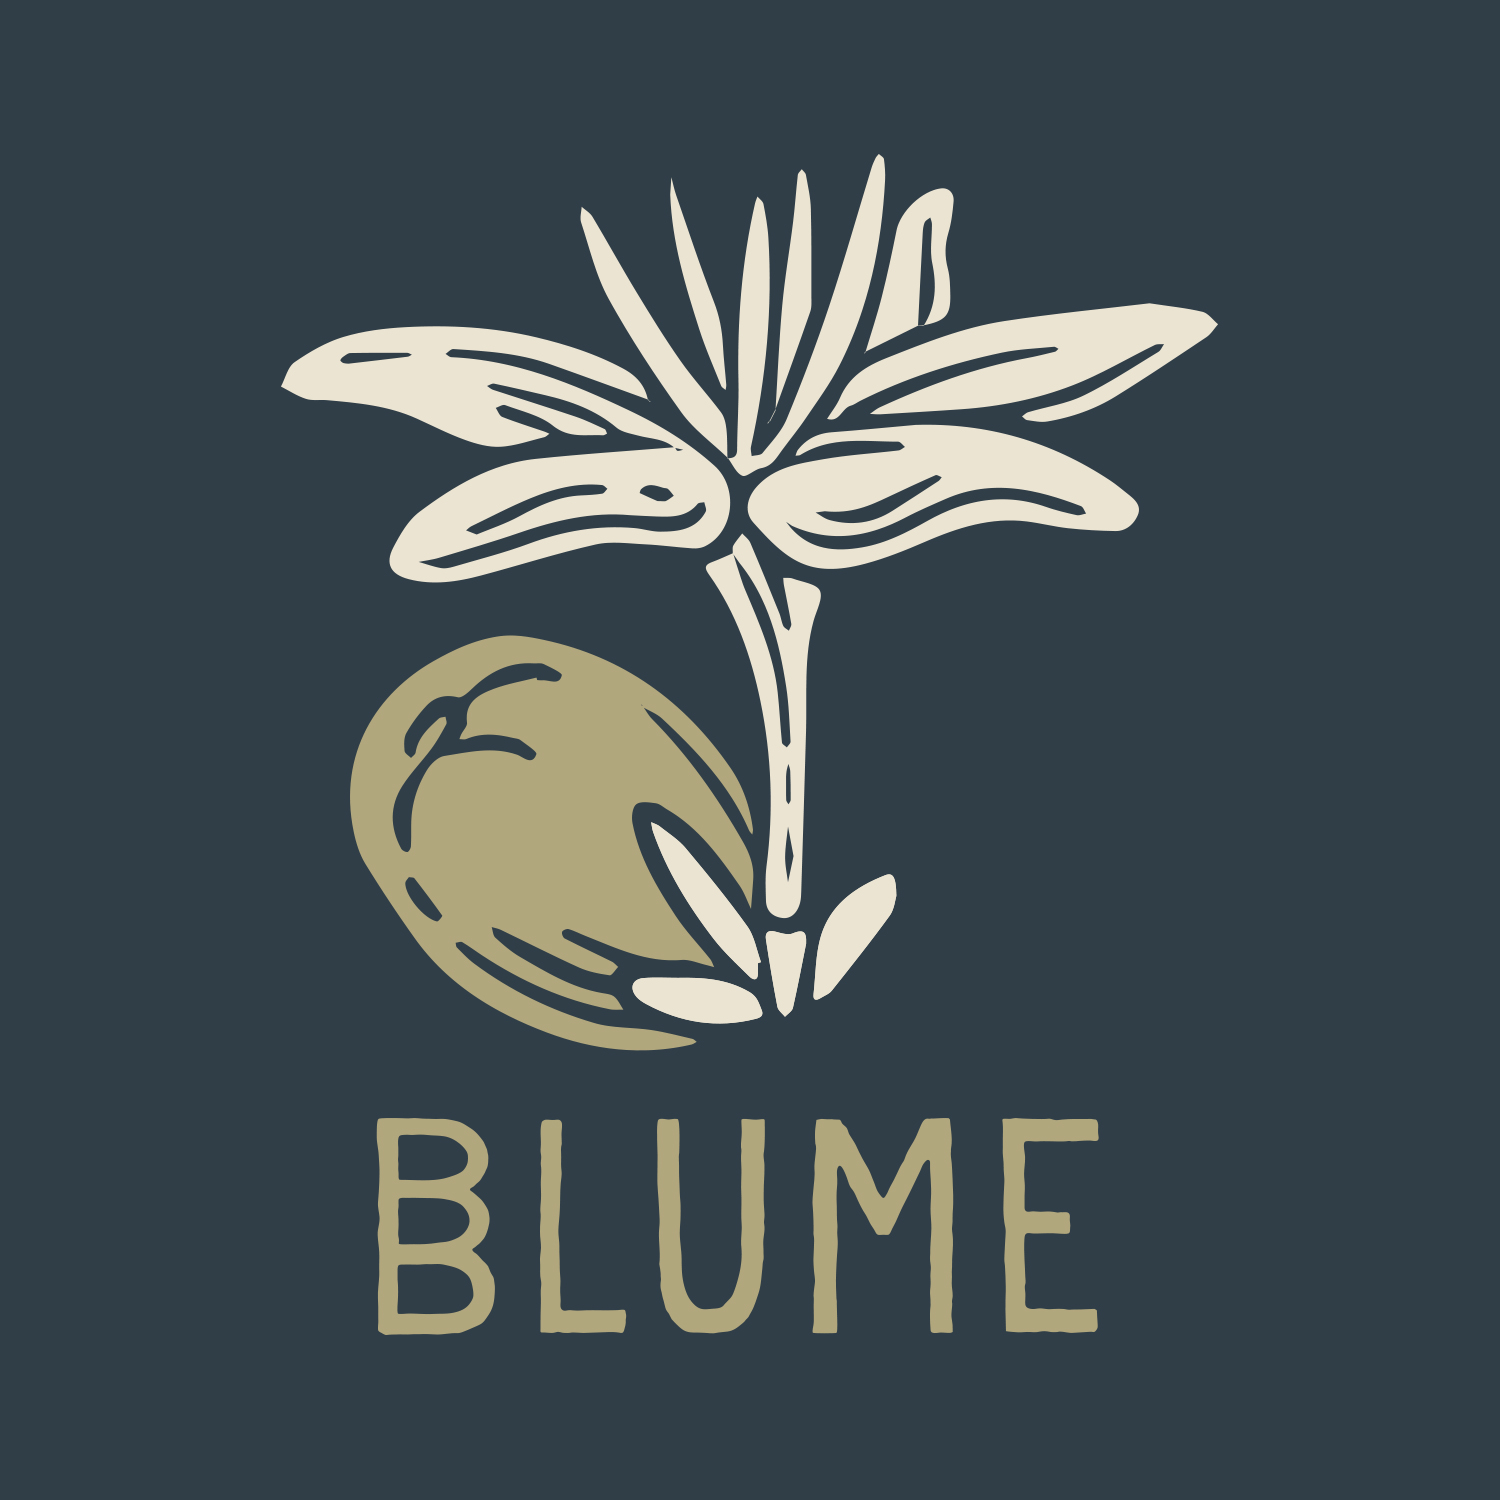 blume_icon_2.png